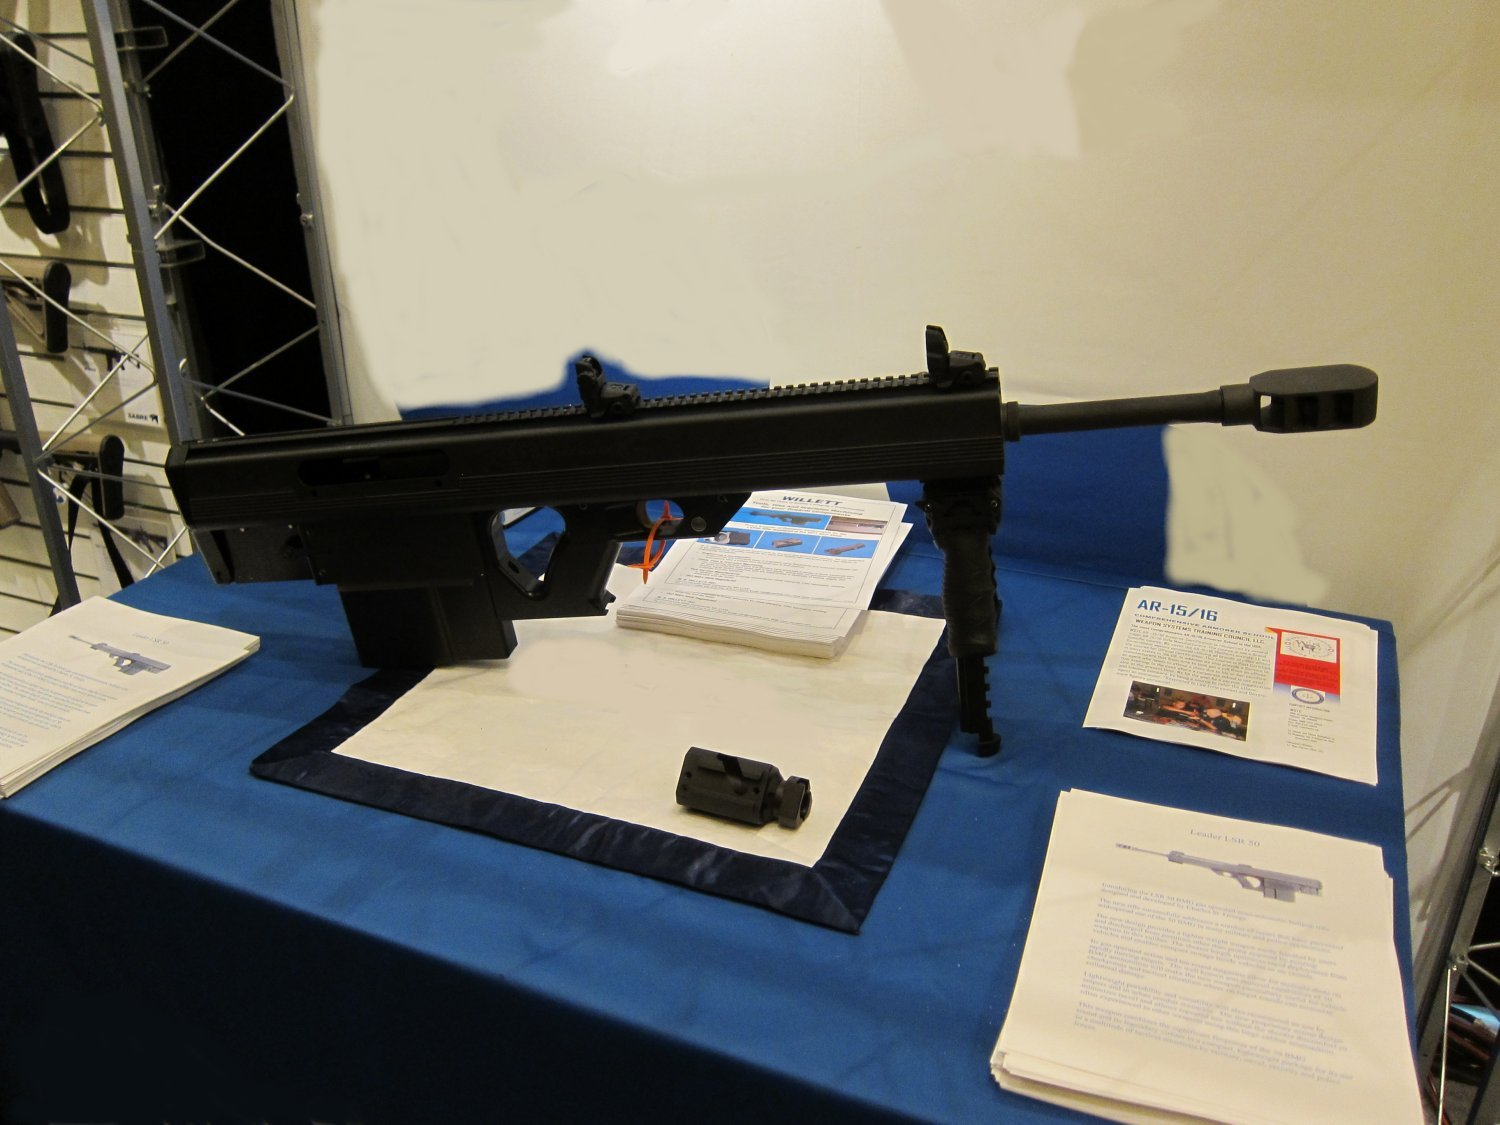 Leader 50 BMG Semi Auto Bullpup .50 BMG Anti Materiel Sniper Rifle at SHOT Show 2011 1 <!  :en  >Leader 50 BMG Revolutionary Ultra Compact and Lightweight Semi Auto Bullpup .50 BMG (12.7x99mm NATO) Anti Materiel/Sniper Rifle for Military Special Operations Forces (SOF) and Civilian Tactical Shooters: Coming Soon to a Theater of Operations and Shooting Range Near You? <!  :  >